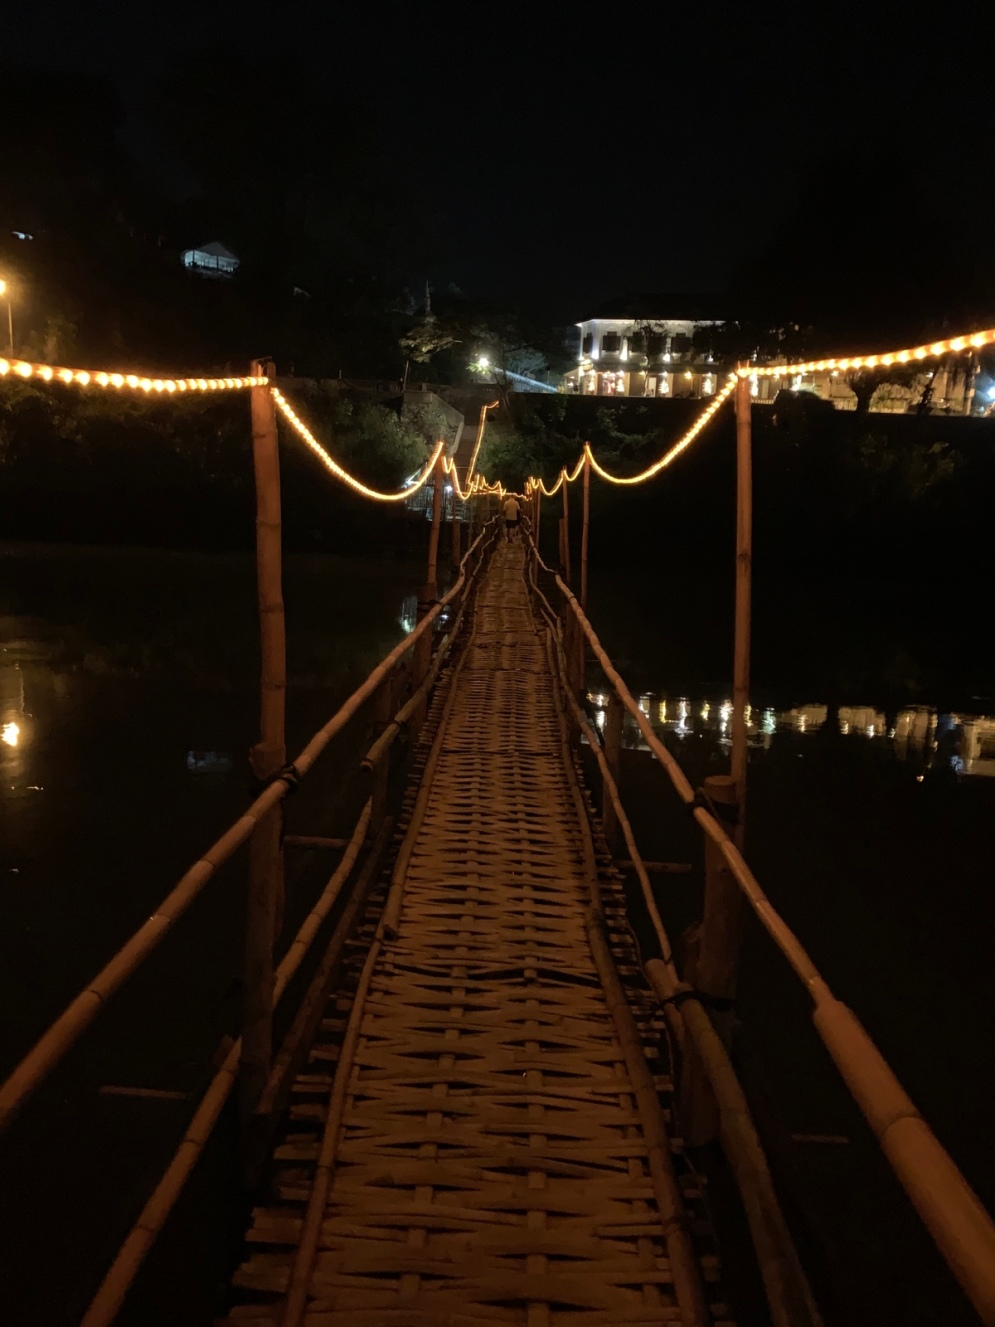 The Bamboo Bridge by night